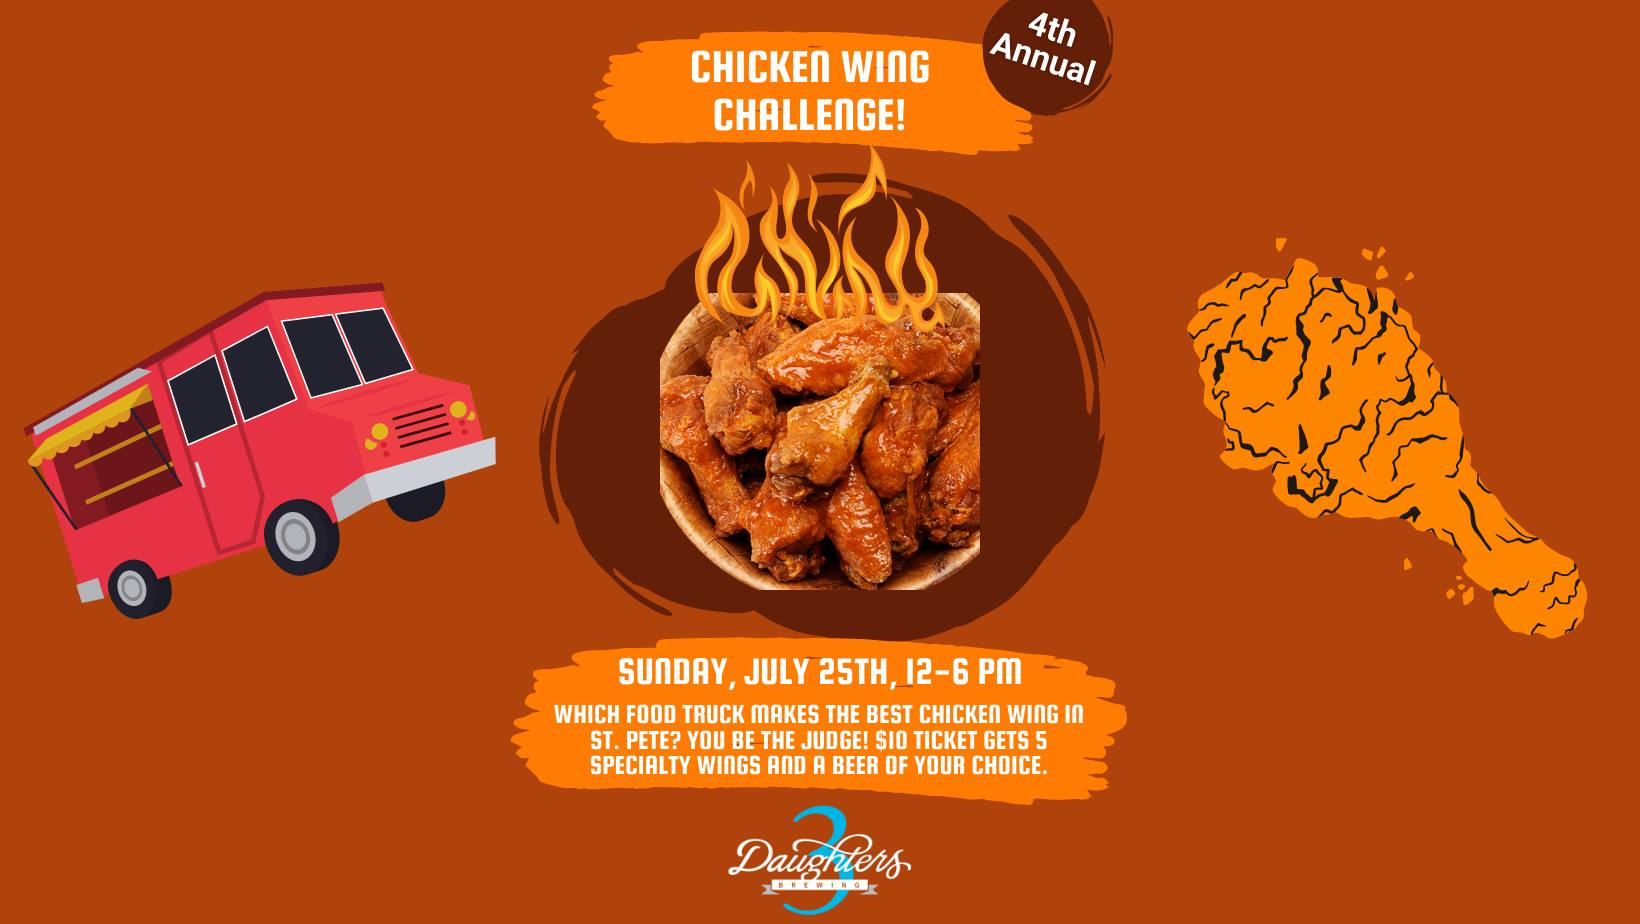 3rd Annual Chicken Wing Challenge